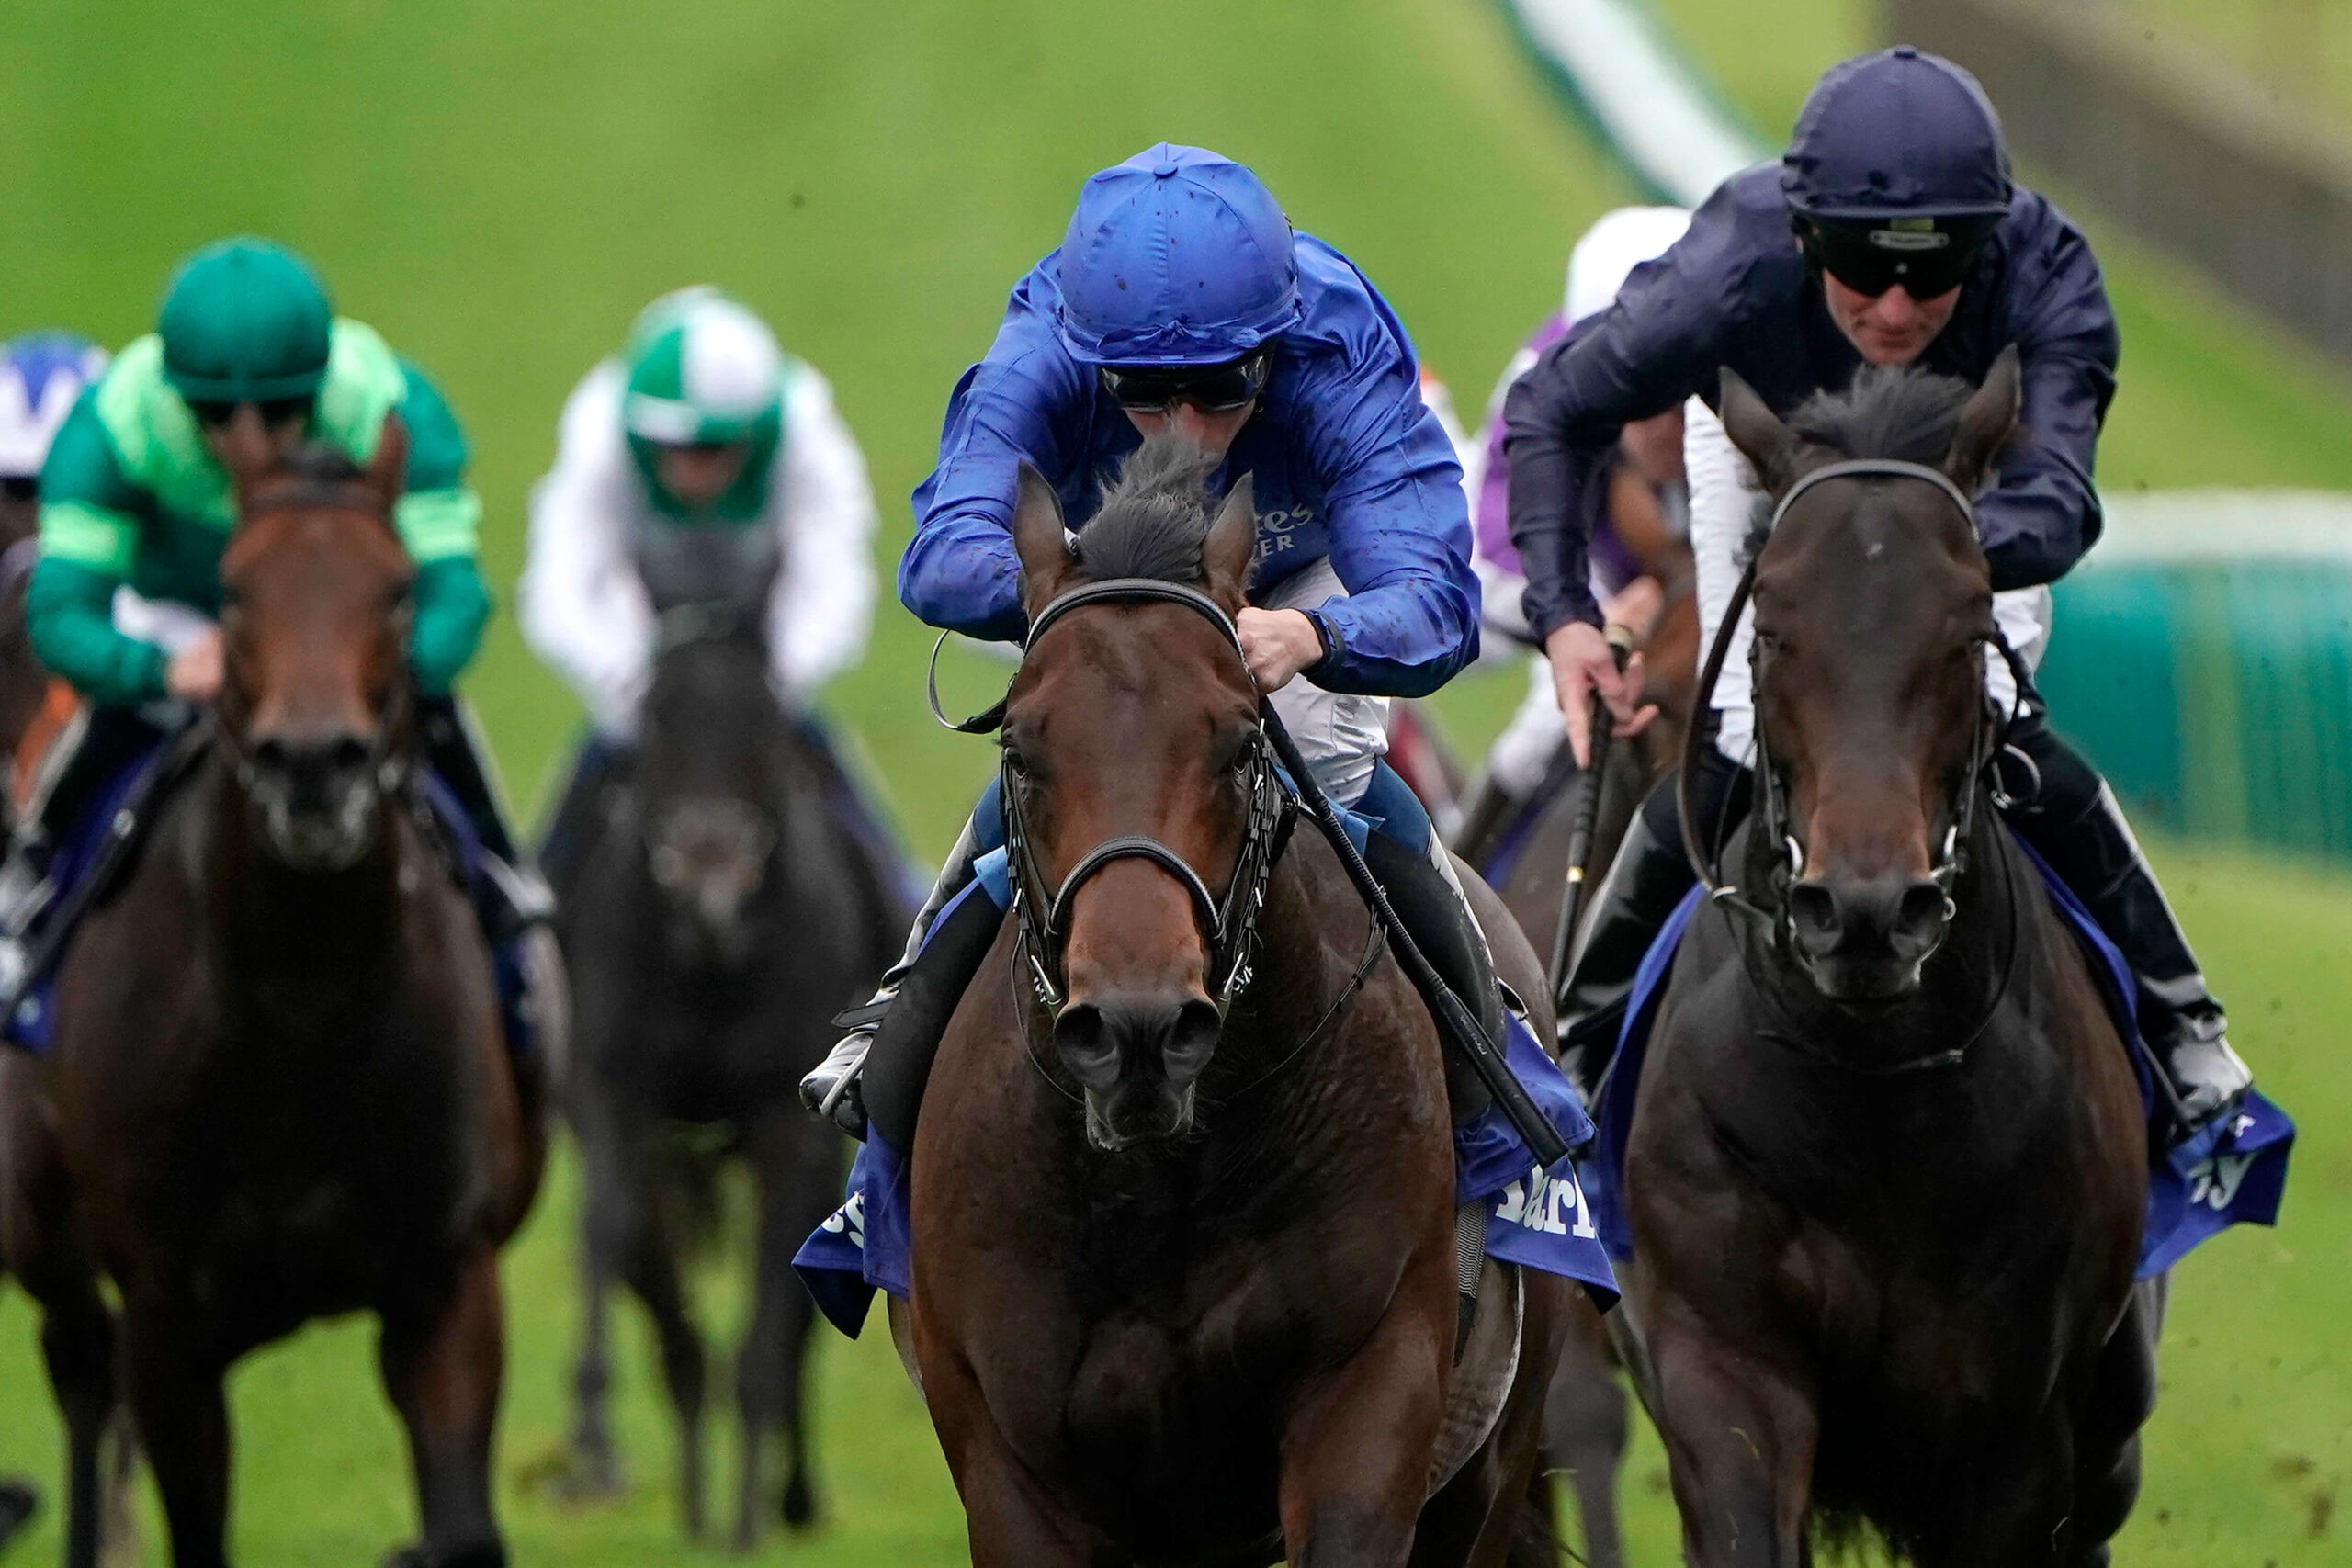 Pinatubo (l) and Arionza (r) are set to do battle in the 2000 Guineas at Newmarket.